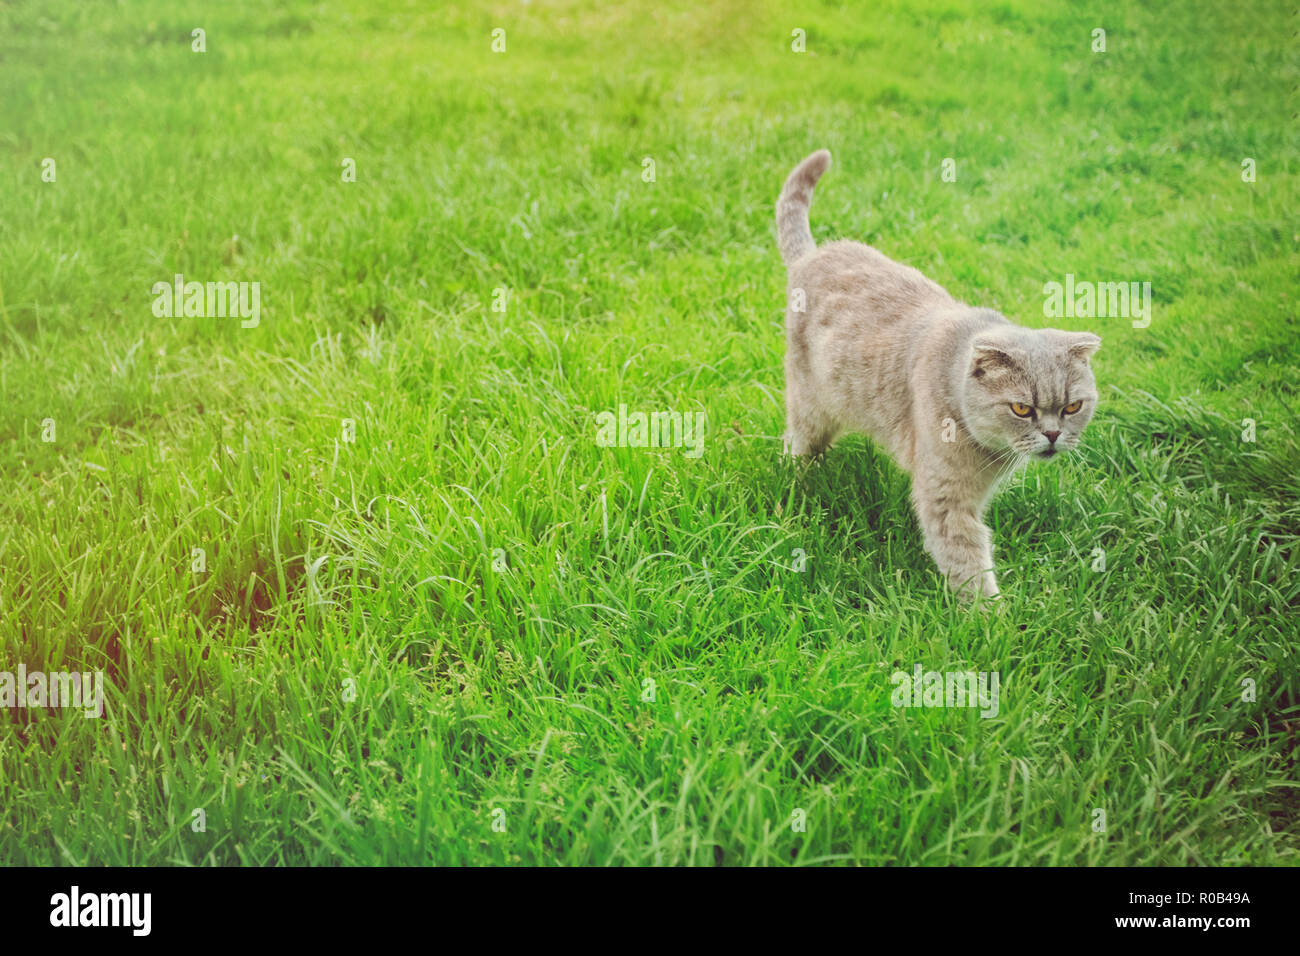 Scottish gray cat walking on the green lawn grass in the afternoon - Stock Image